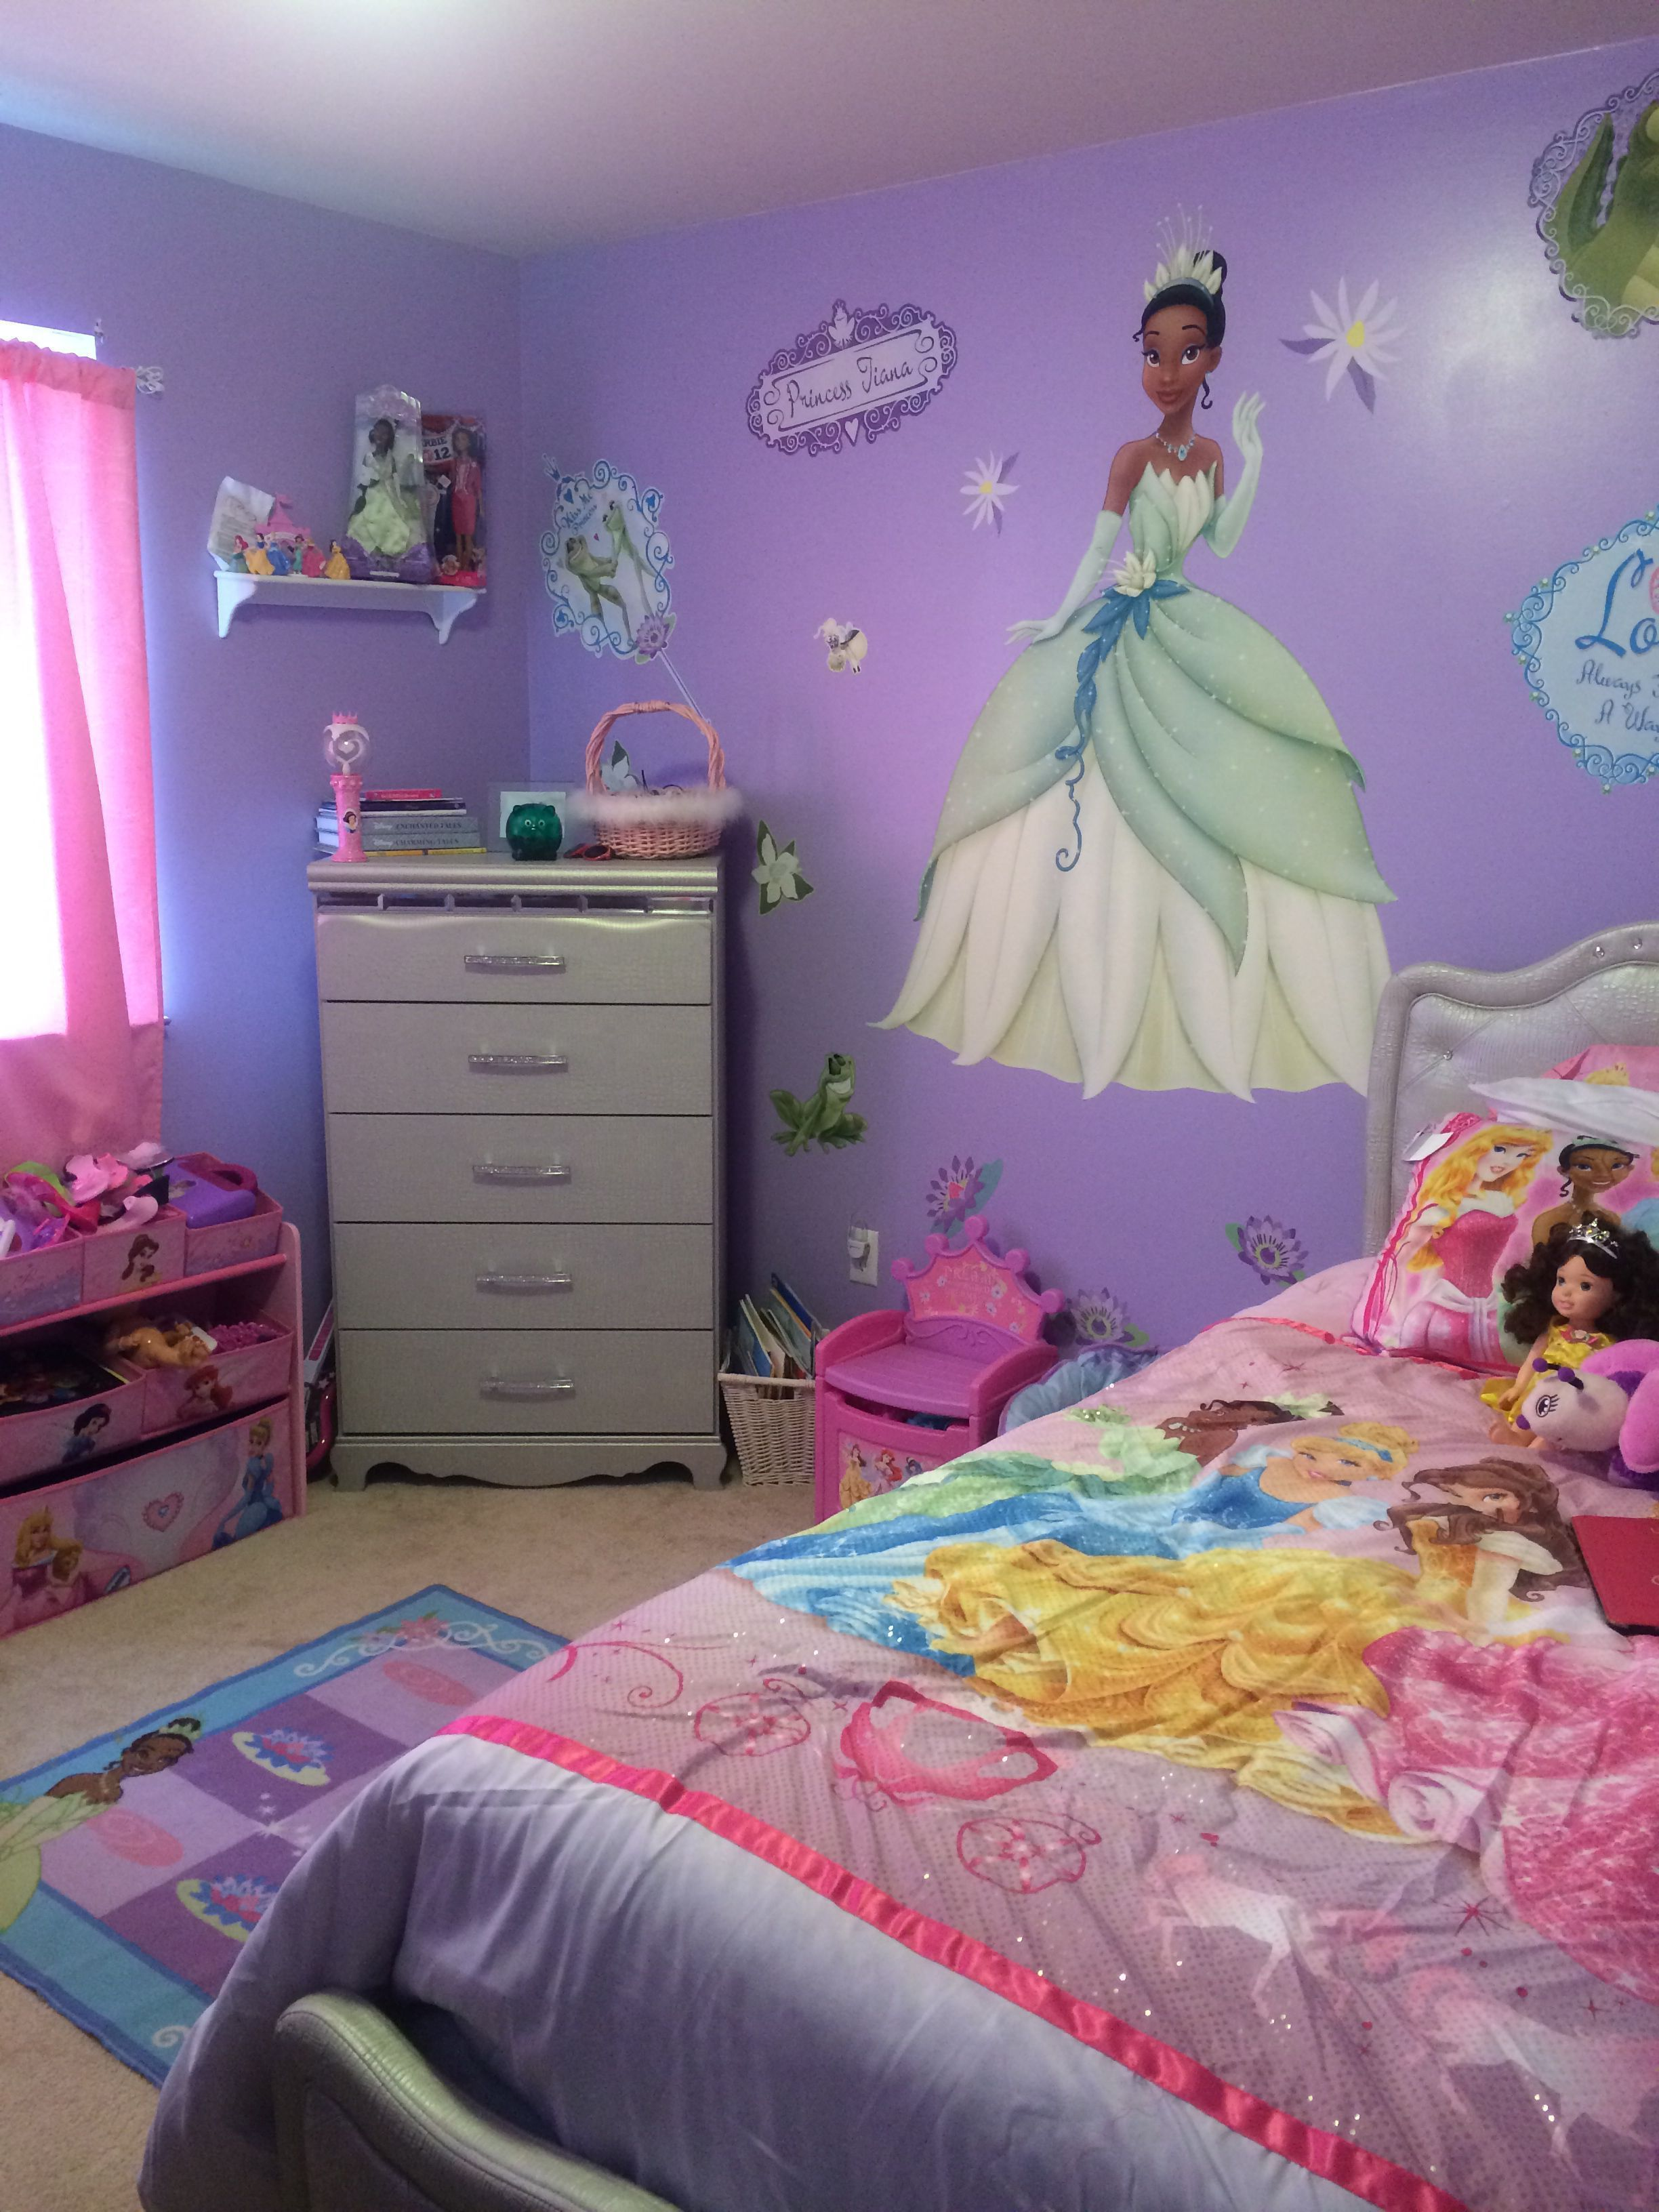 Disney Princess Space Accessories Are Anywhere And This Is The Good News Princess Bedrooms Princess Room Decor Disney Princess Room